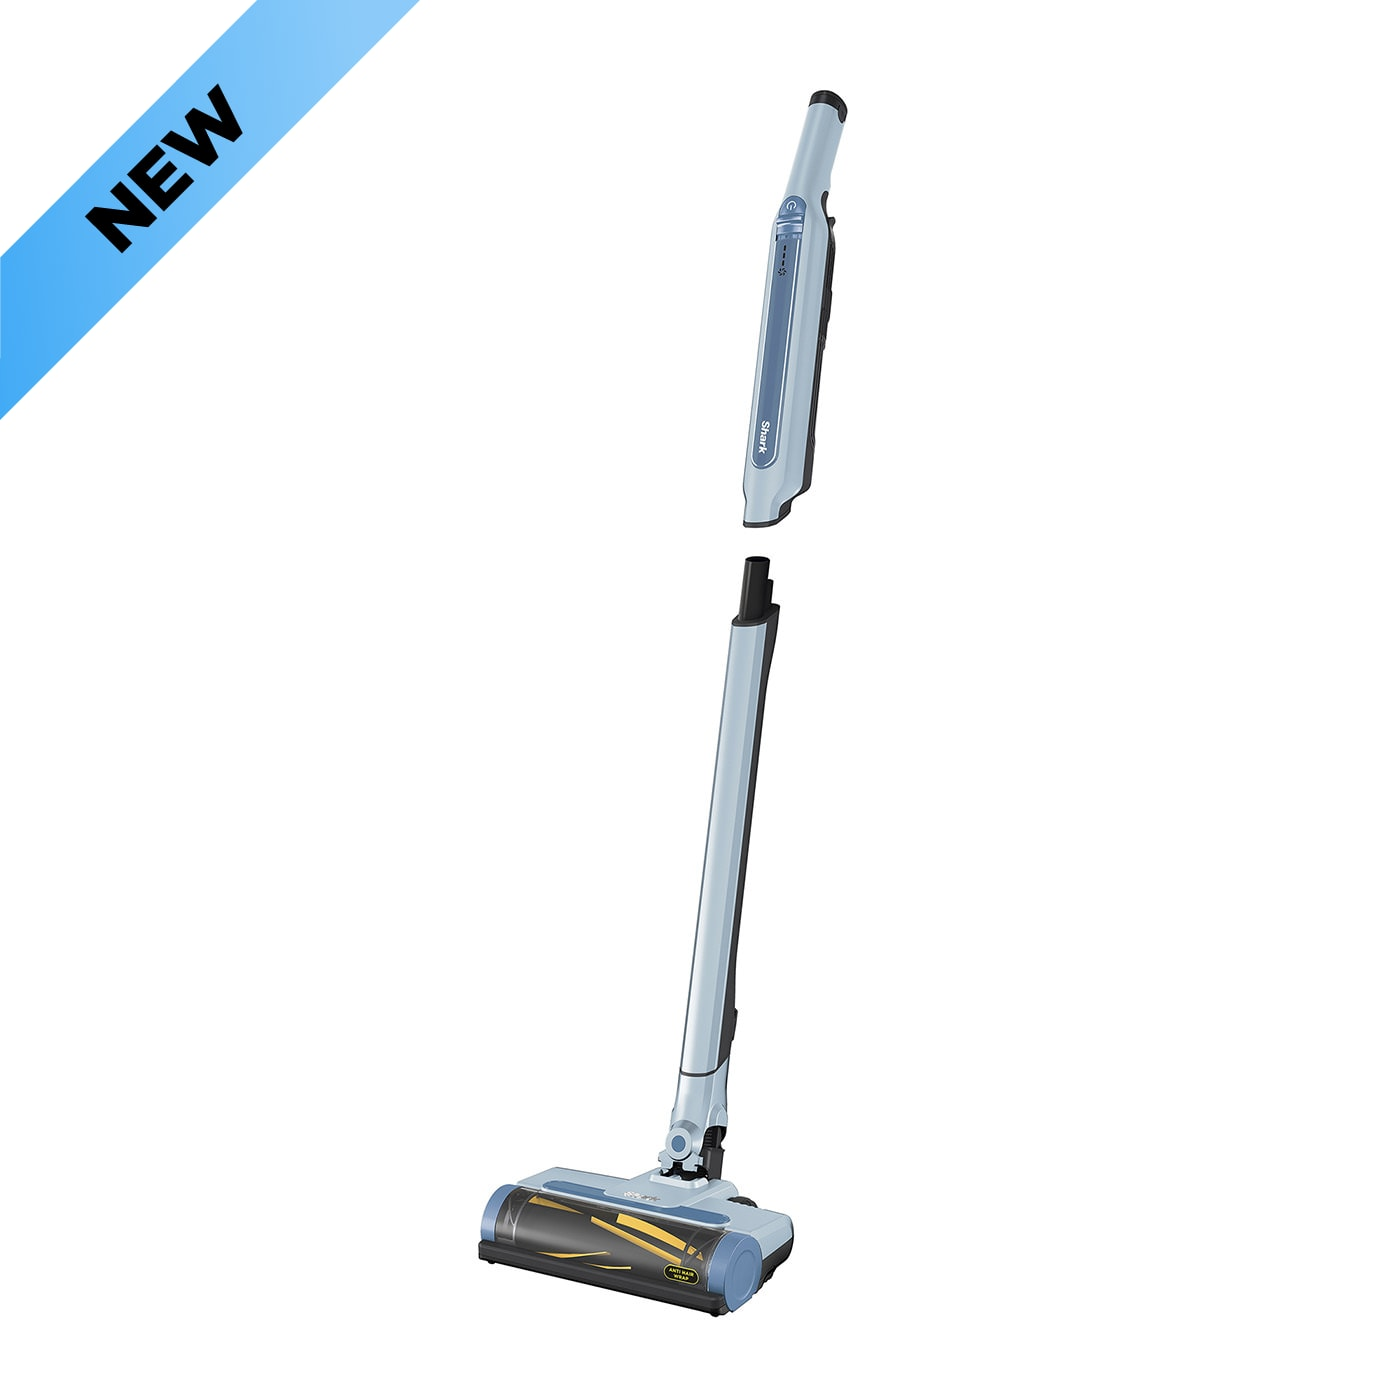 Shark WandVac System 2-in-1 Cordless Vacuum Cleaner with Anti Hair Wrap [Single Battery] WV361BLUK – Blue product photo